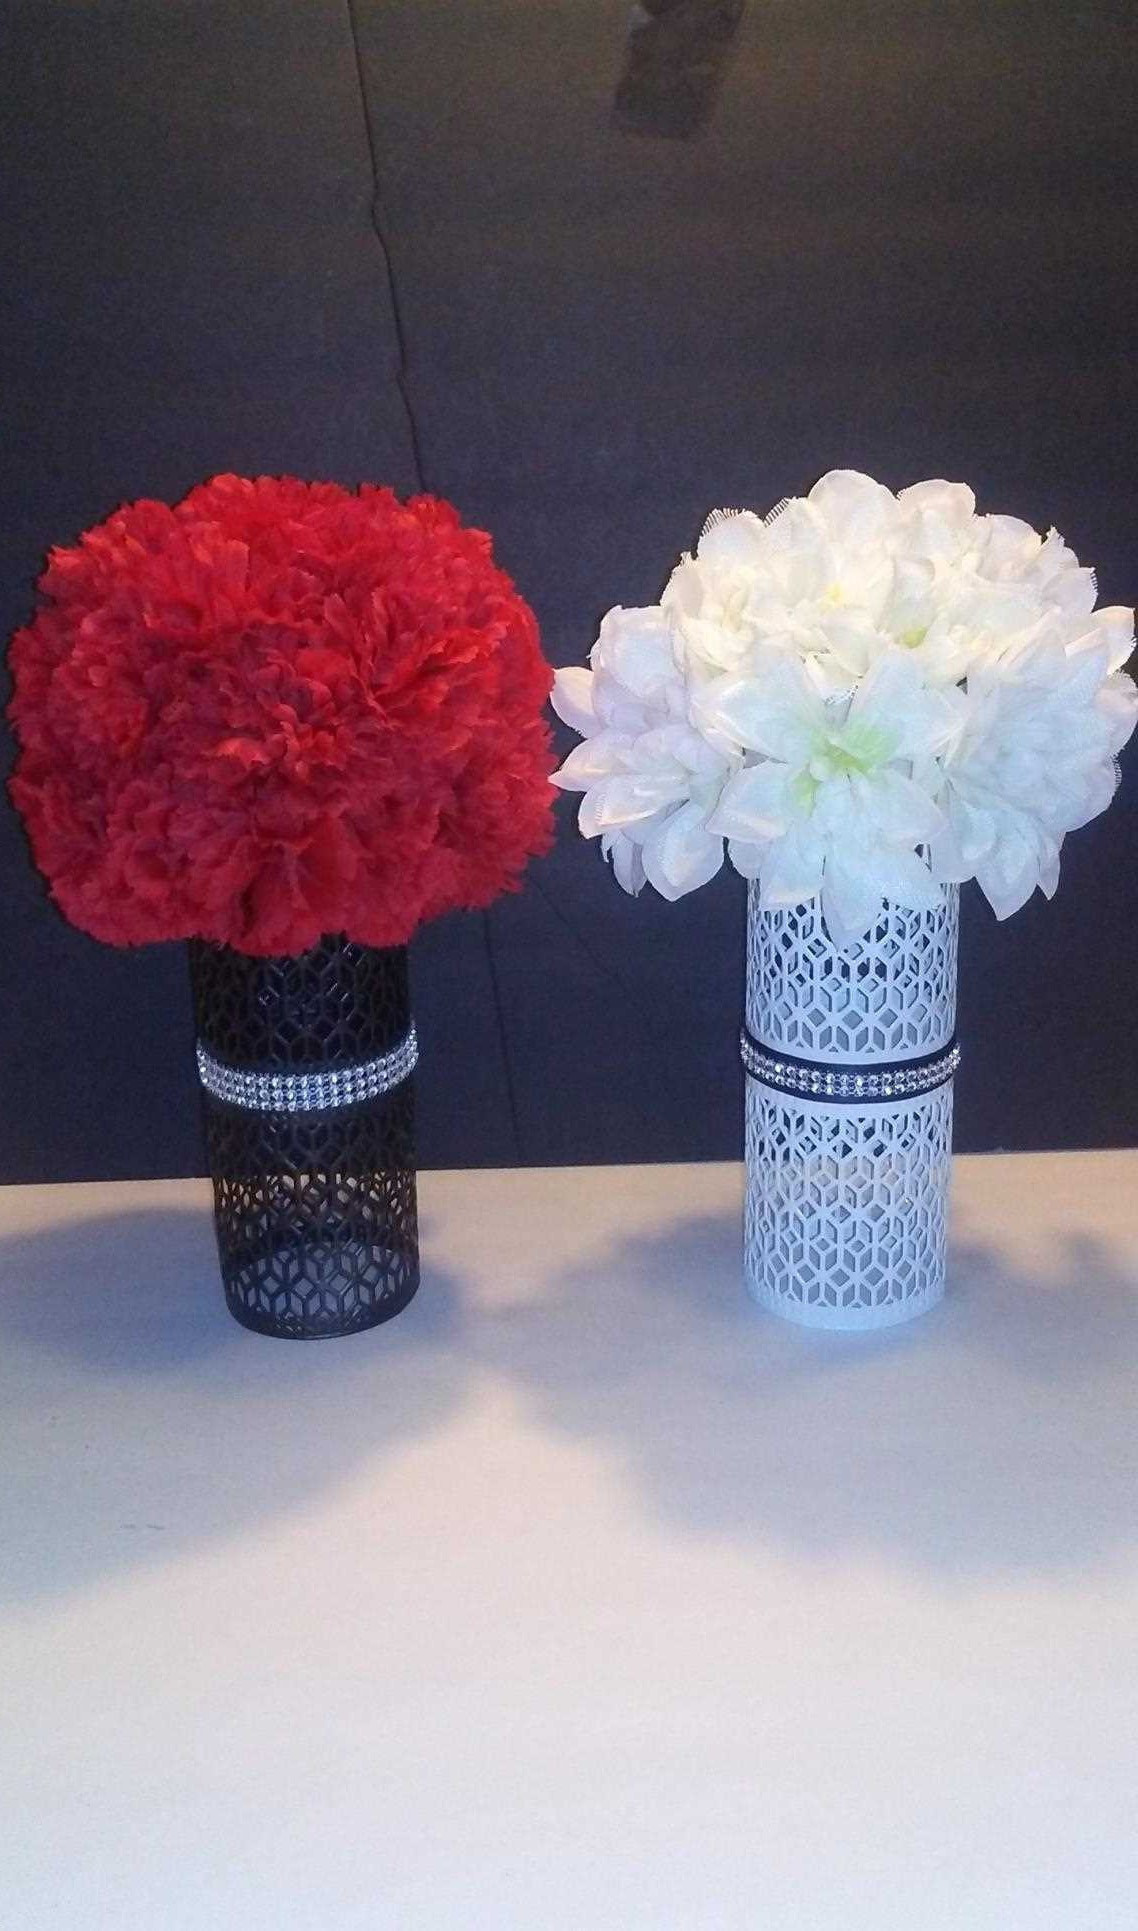 where to buy centerpiece vases of wedding vase for sale pictures il fullxfull h vases black vase white intended for wedding vase for sale pics dollar tree wedding decorations awesome h vases dollar vase i 0d